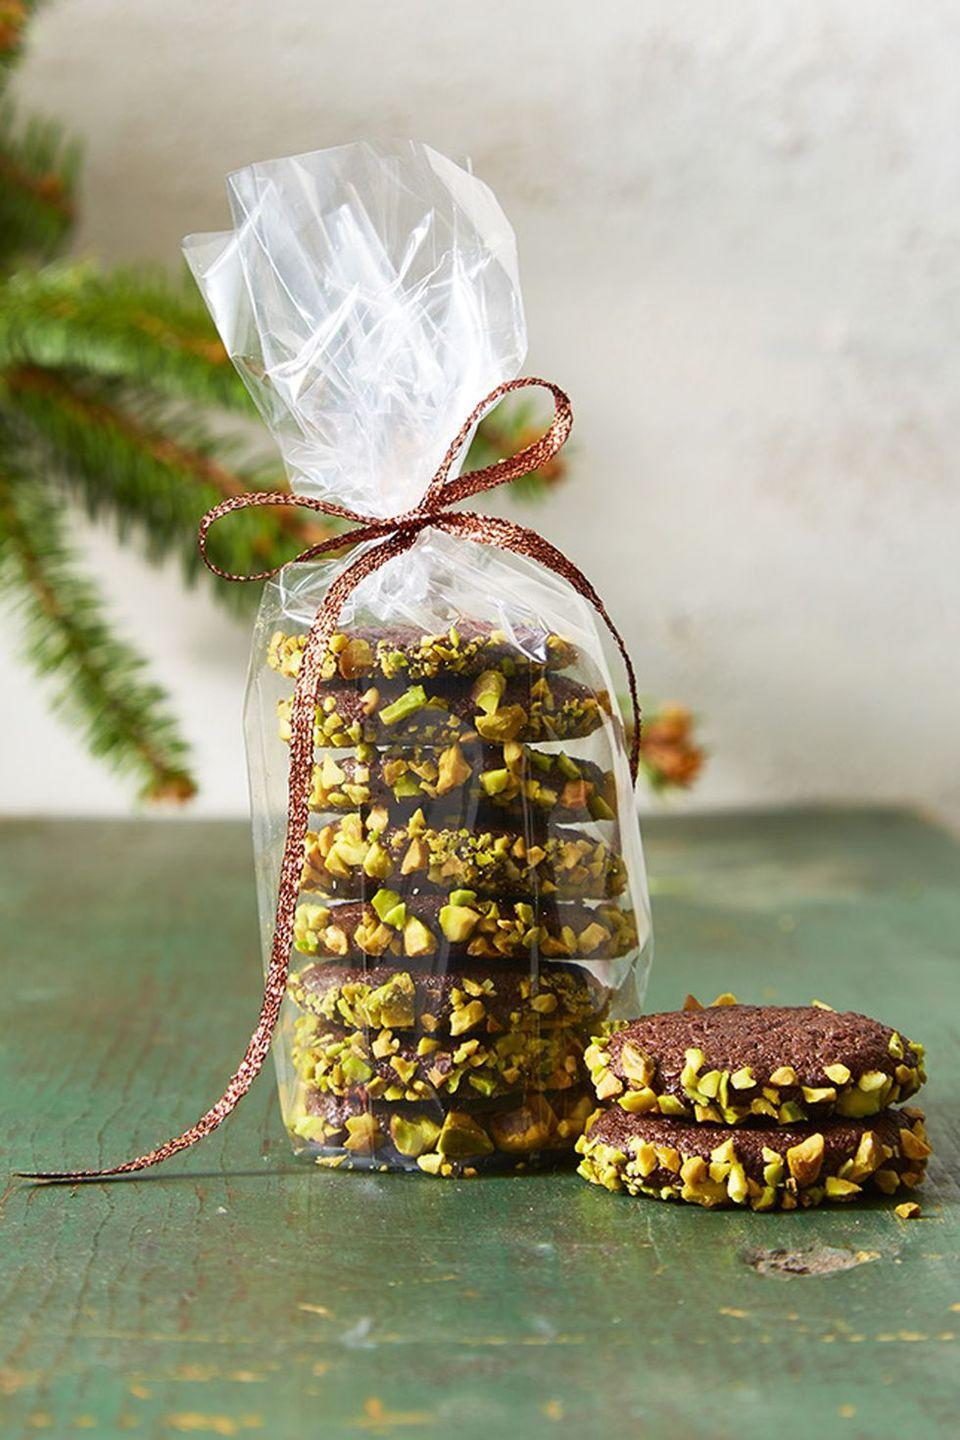 """<p>Roll logs of the chocolate cookie dough in pistachios, then slice and enjoy a sweet and salty bite (or two).</p><p><a href=""""https://www.goodhousekeeping.com/food-recipes/dessert/a46923/slice-and-bake-chocolate-and-pistachio-cookies-recipe/"""" rel=""""nofollow noopener"""" target=""""_blank"""" data-ylk=""""slk:Get the recipe for Slice and Bake Chocolate and Pistachio Cookies »"""" class=""""link rapid-noclick-resp""""><em>Get the recipe for Slice and Bake Chocolate and Pistachio Cookies »</em></a></p>"""